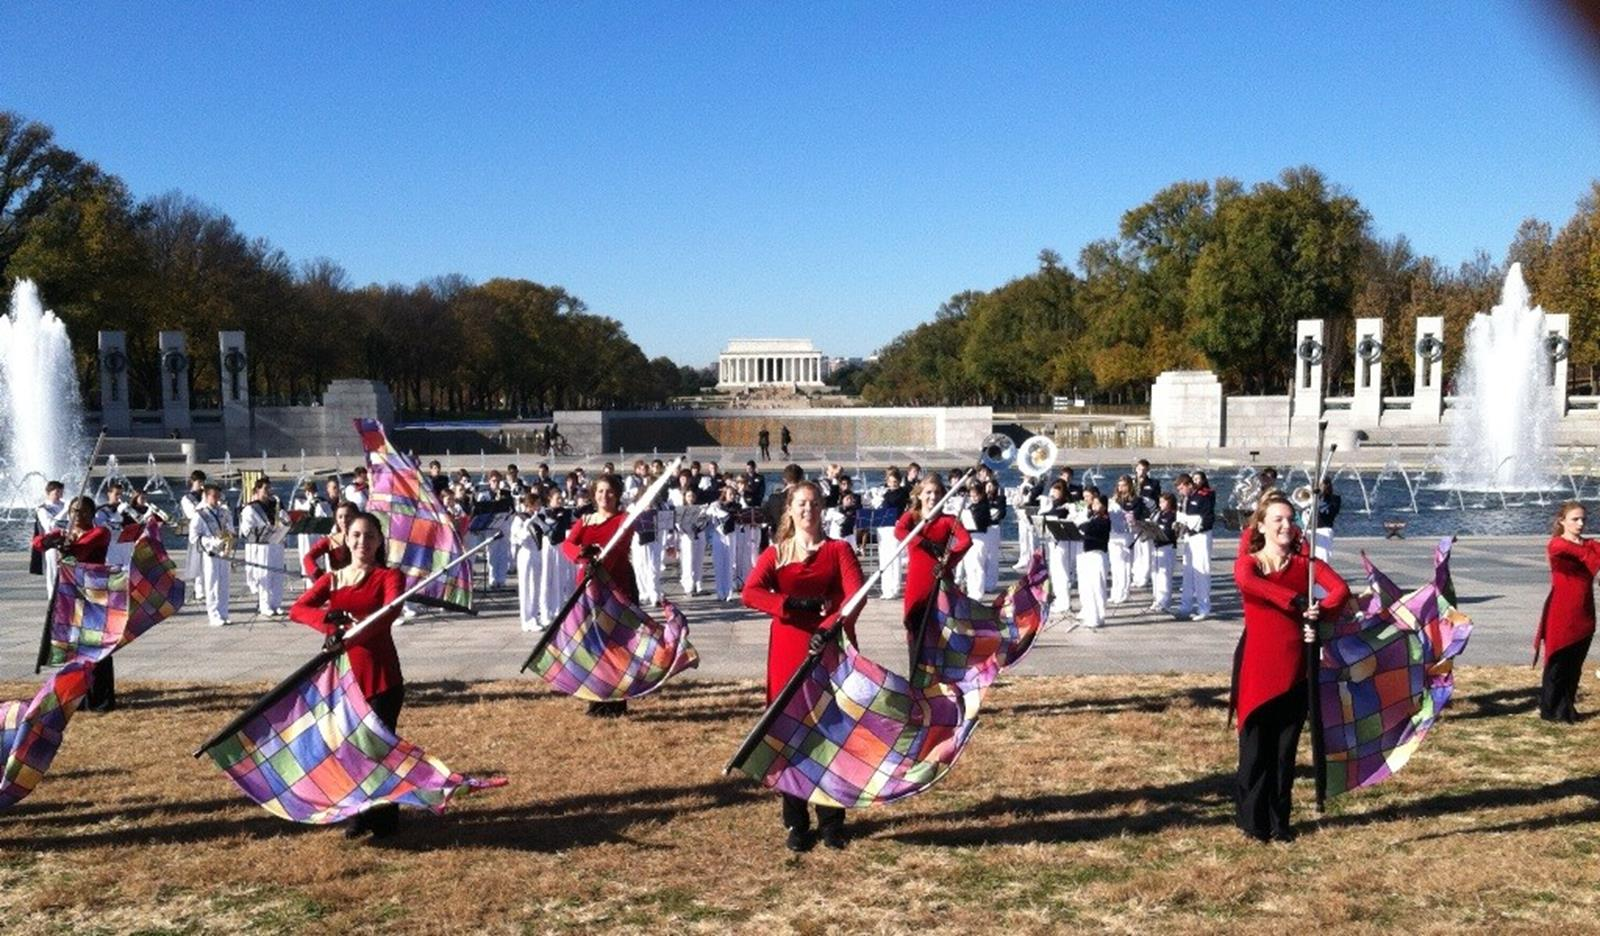 Central Bucks East HS Marching band from Doylestown PA, under the direction of Jason Morehouse. Credit: WorldStrides.